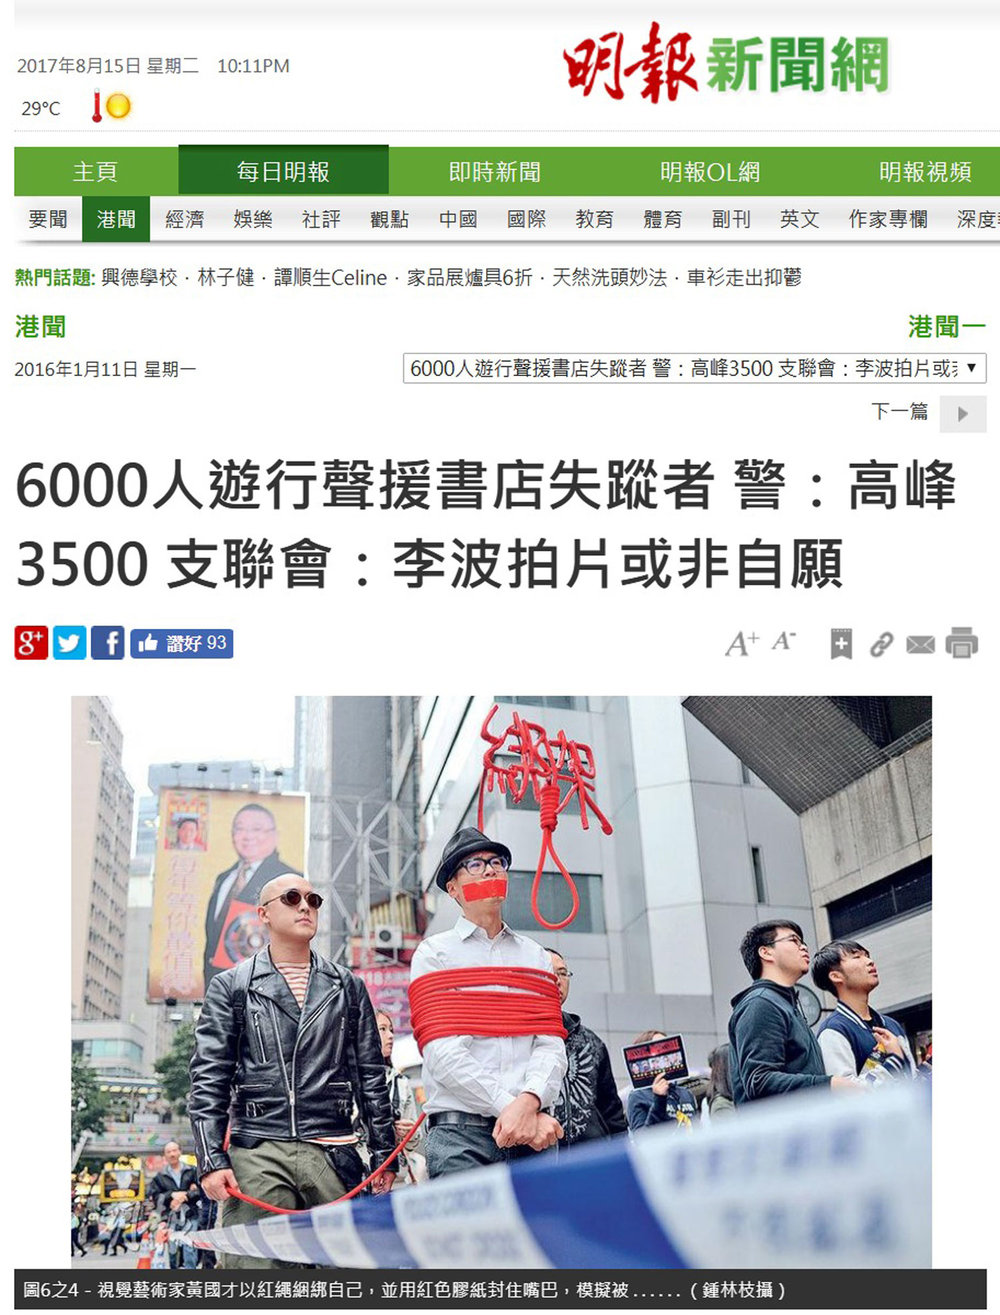 Jan/11/2016 Ming Pao  6000 protesters in support of the missing